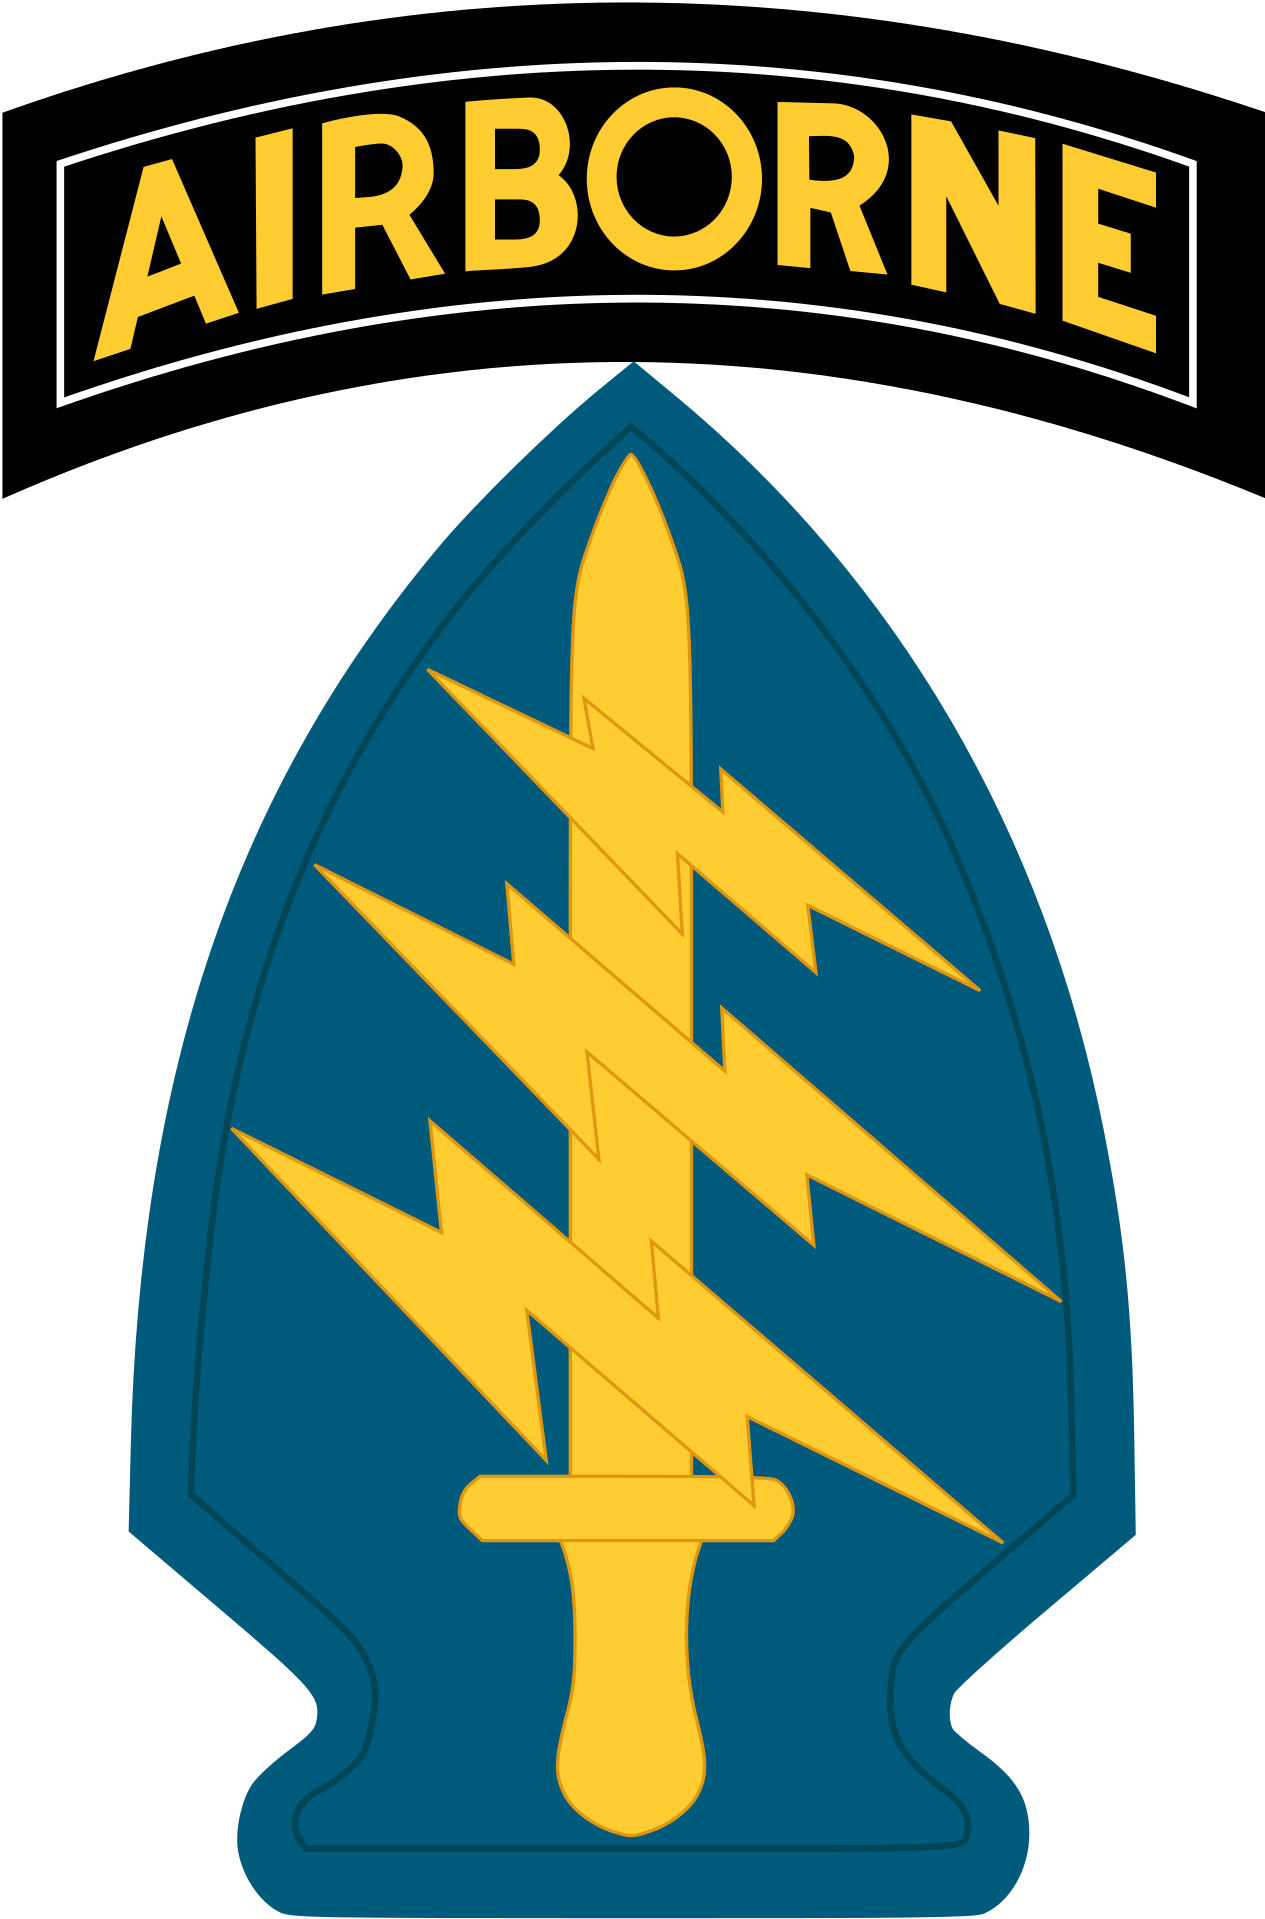 Special Forces (United States Army) Wikipedia, the free